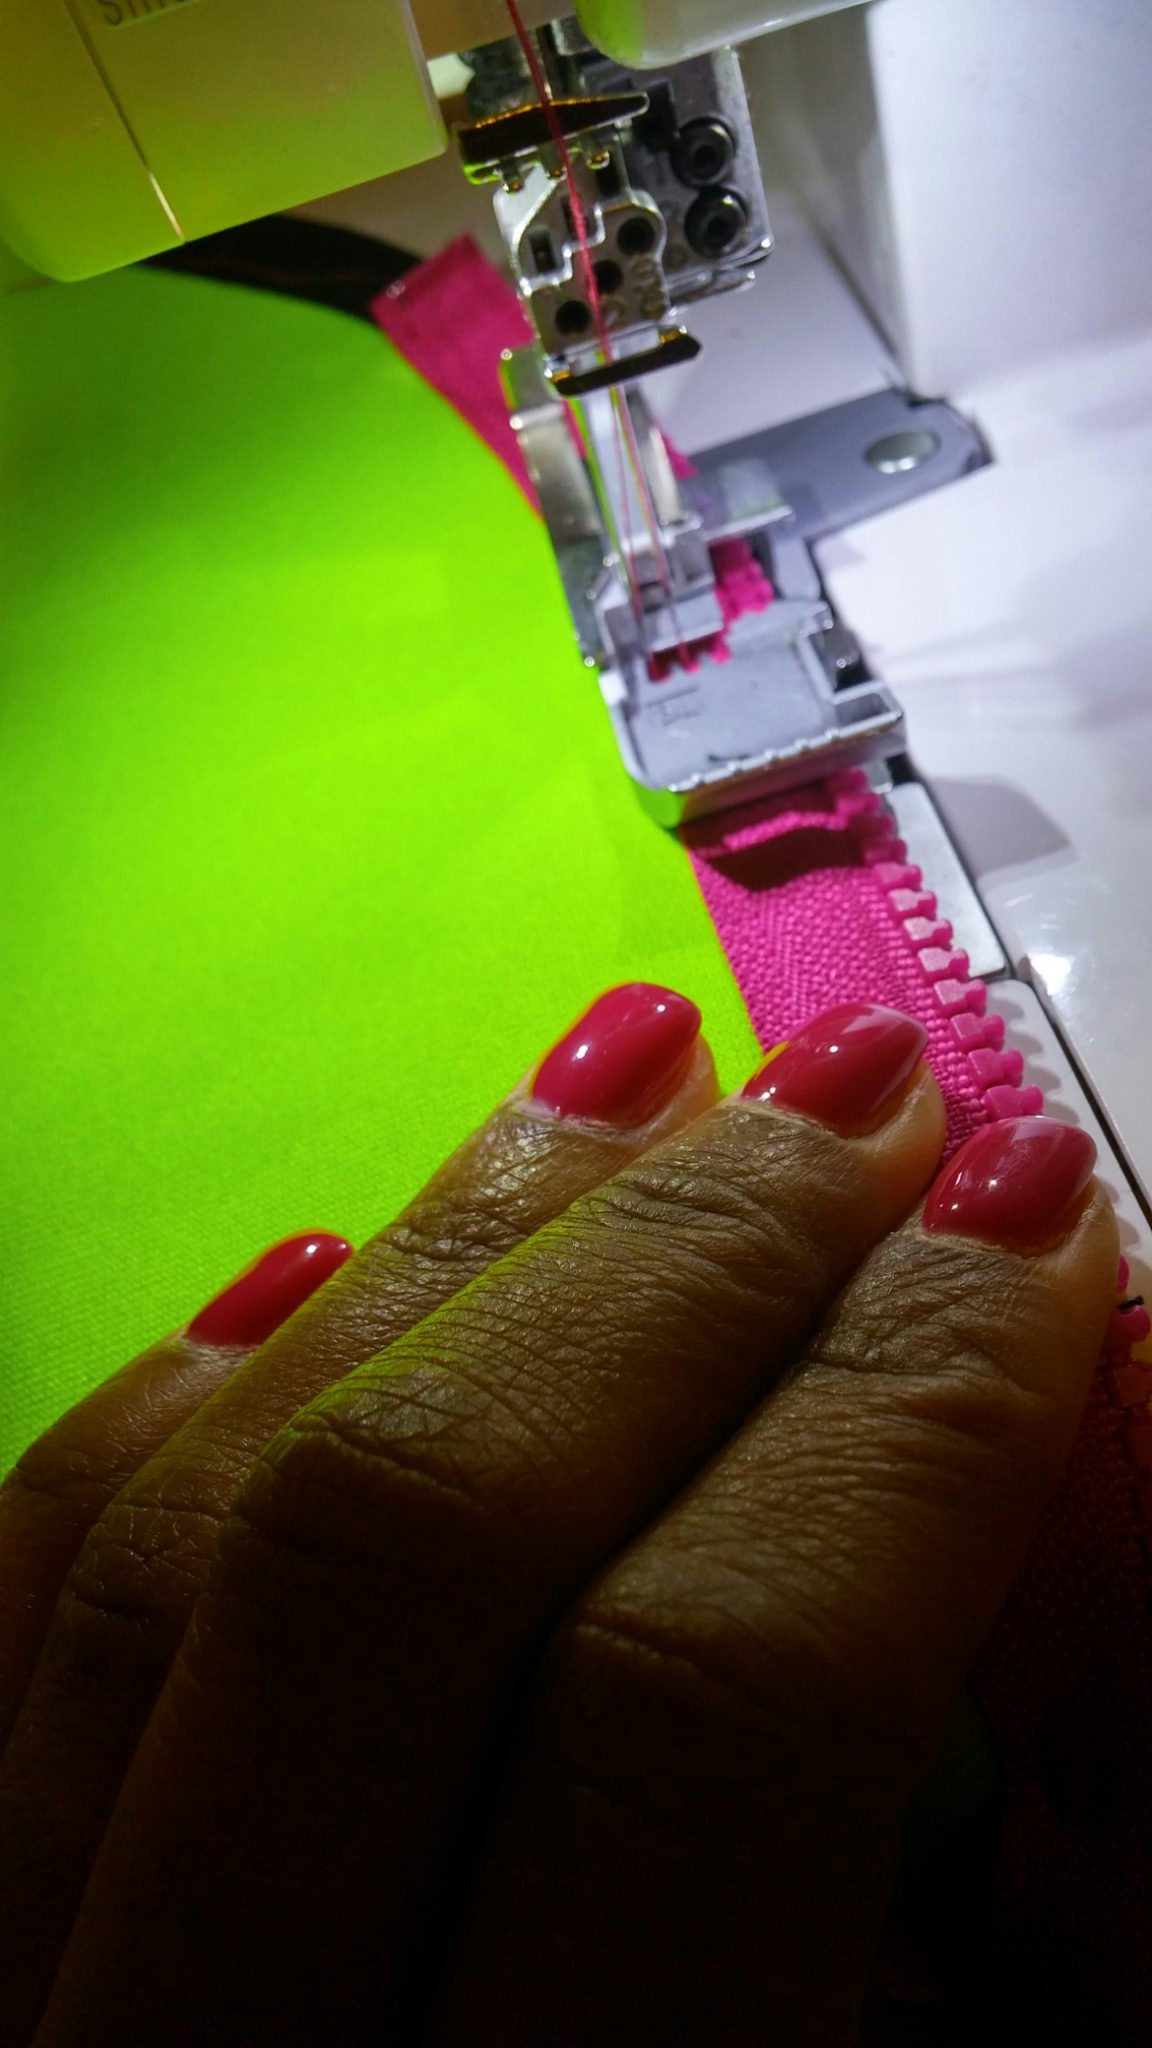 Sewing pink zipper on neoprene dress. 3degreesdb.com